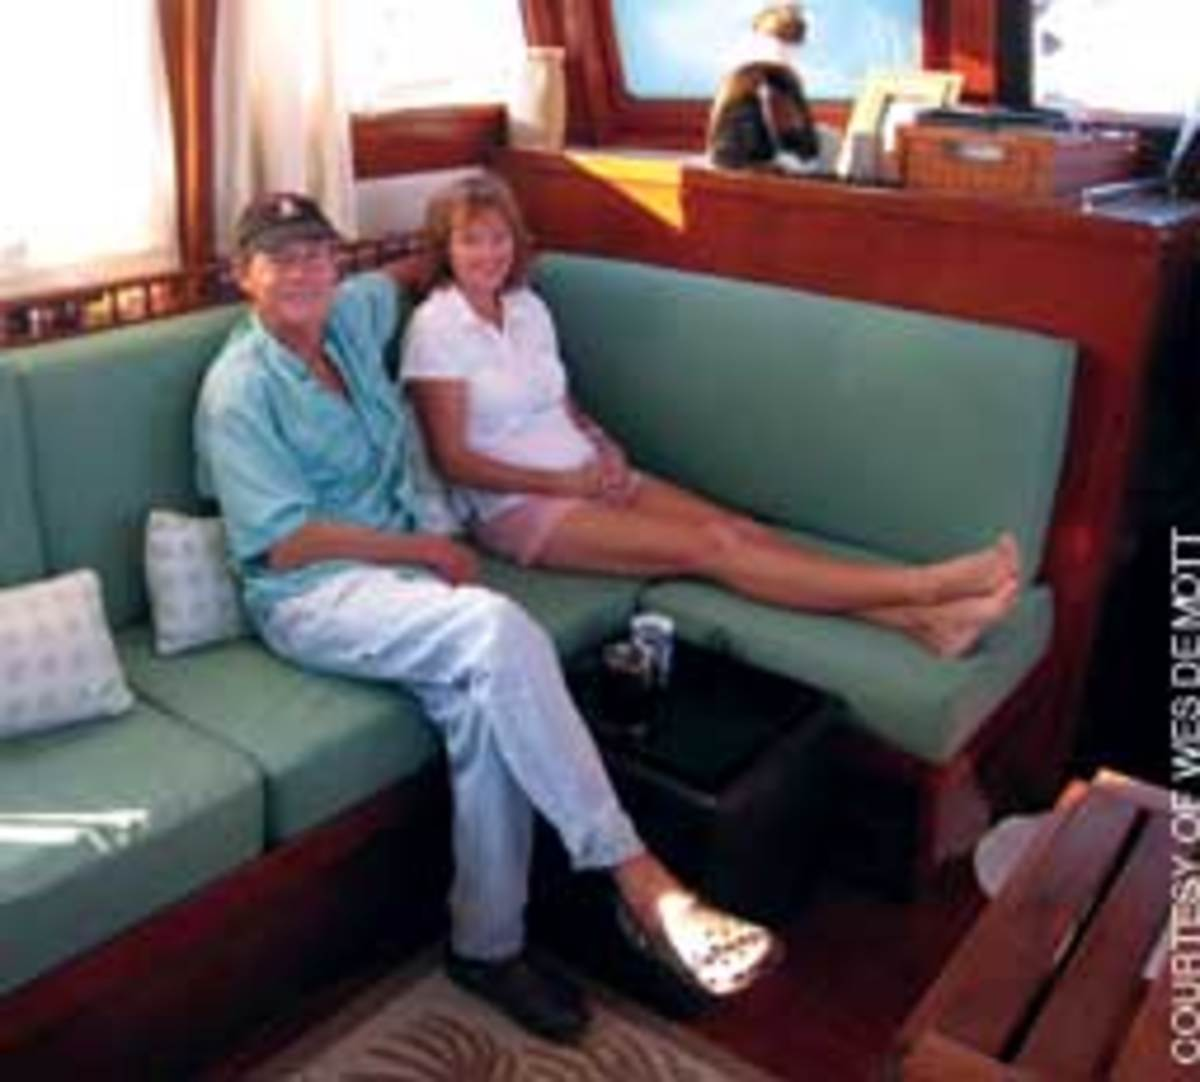 DeMott and his wife, Sabine, had planned to cruise the Caribbean to find inspiration for a new series of books.